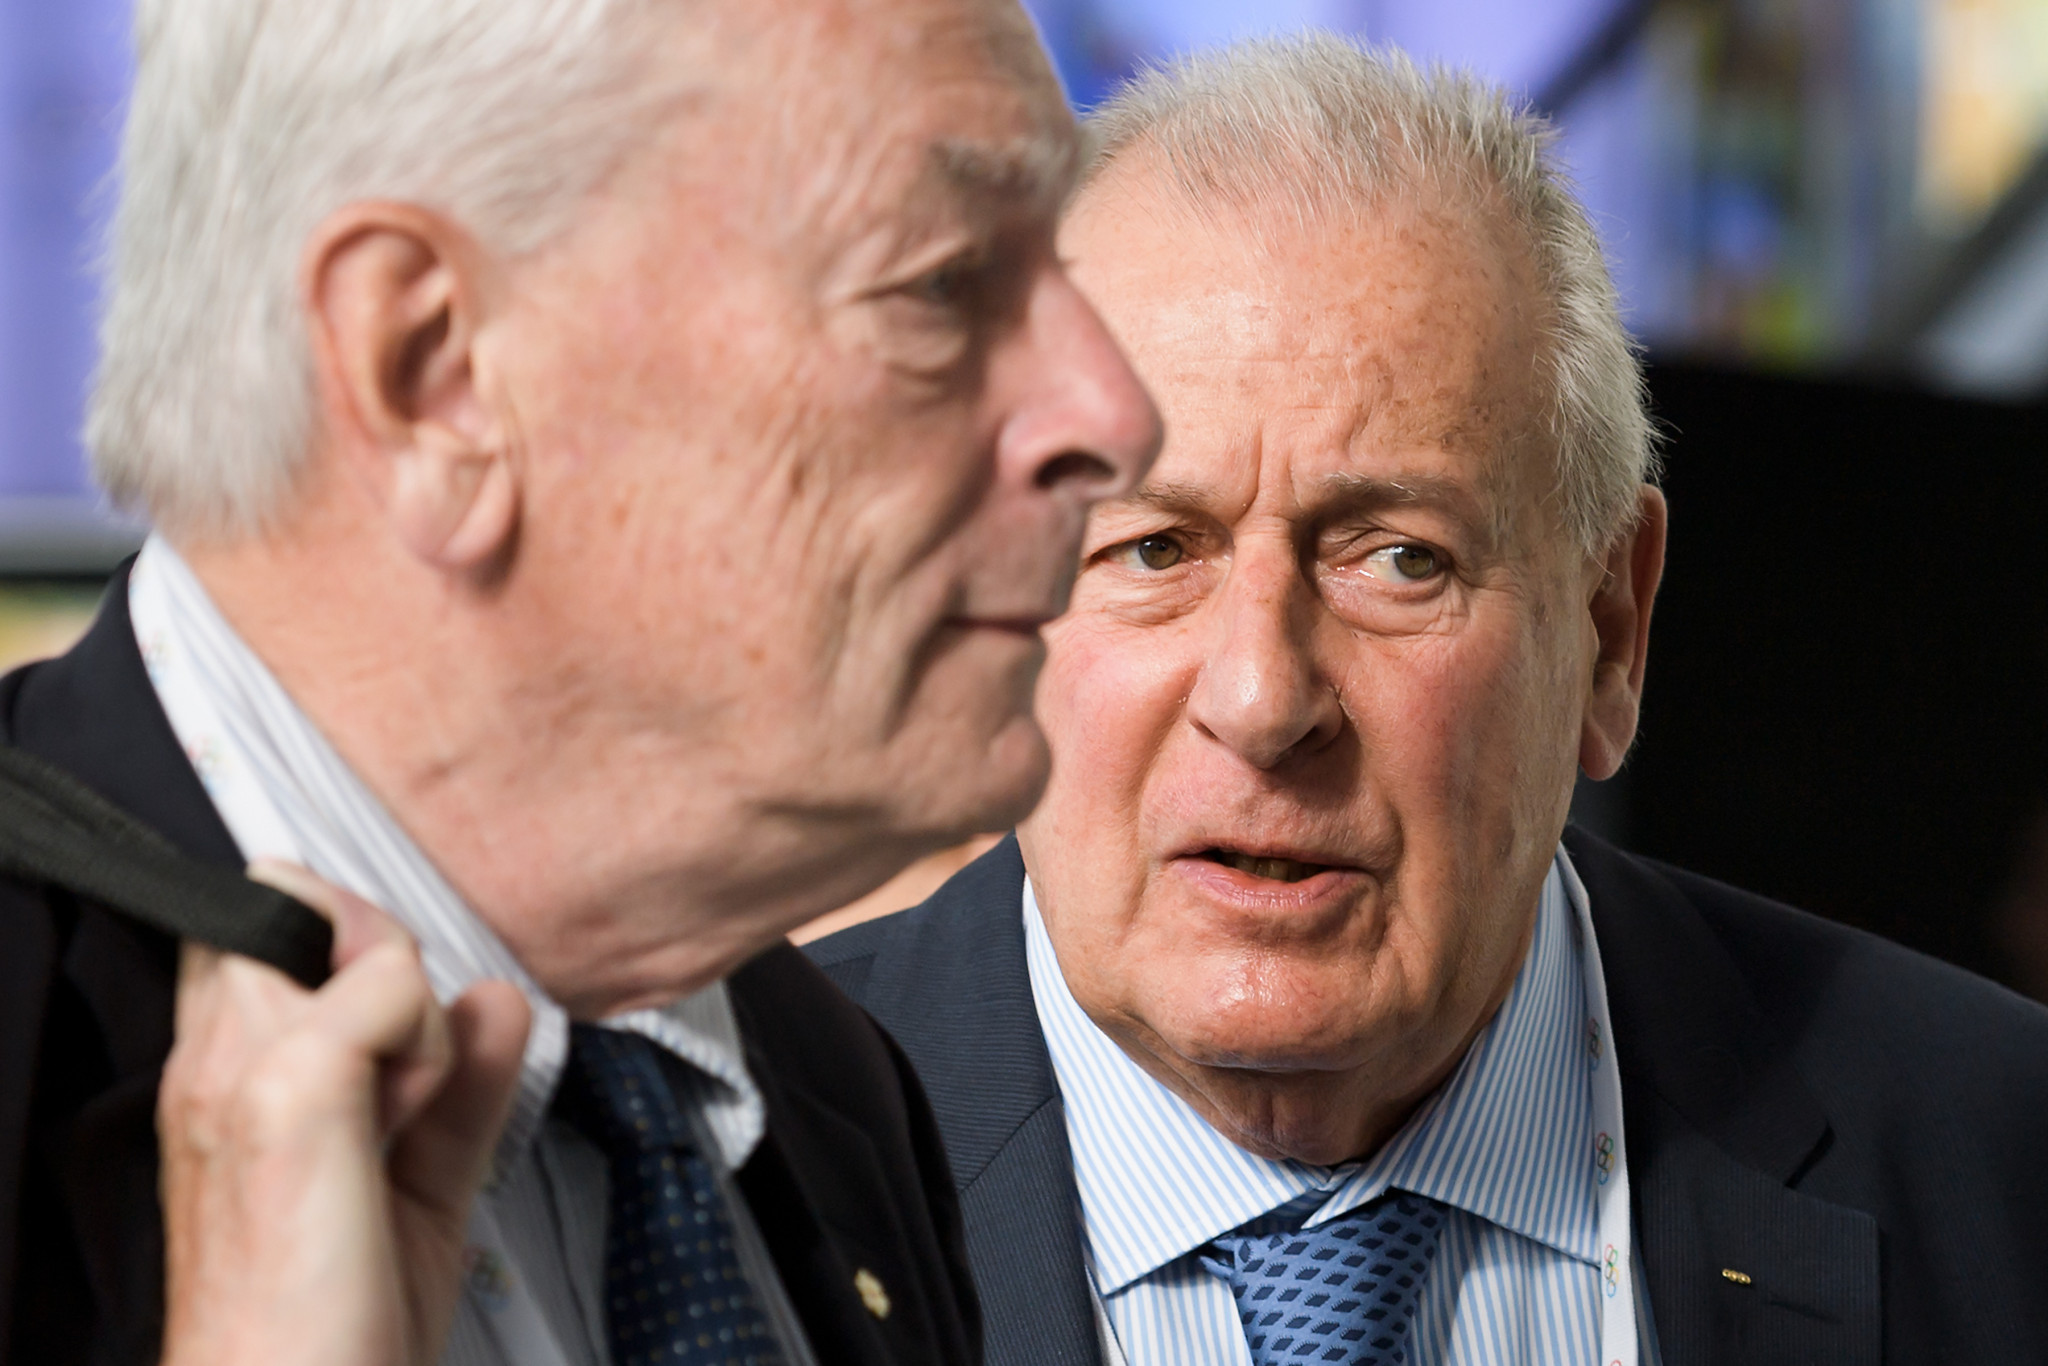 Richard Pound, left, has seemingly been removed from a position on the OBS Board. François Carrard, right, is among its other members ©Getty Images